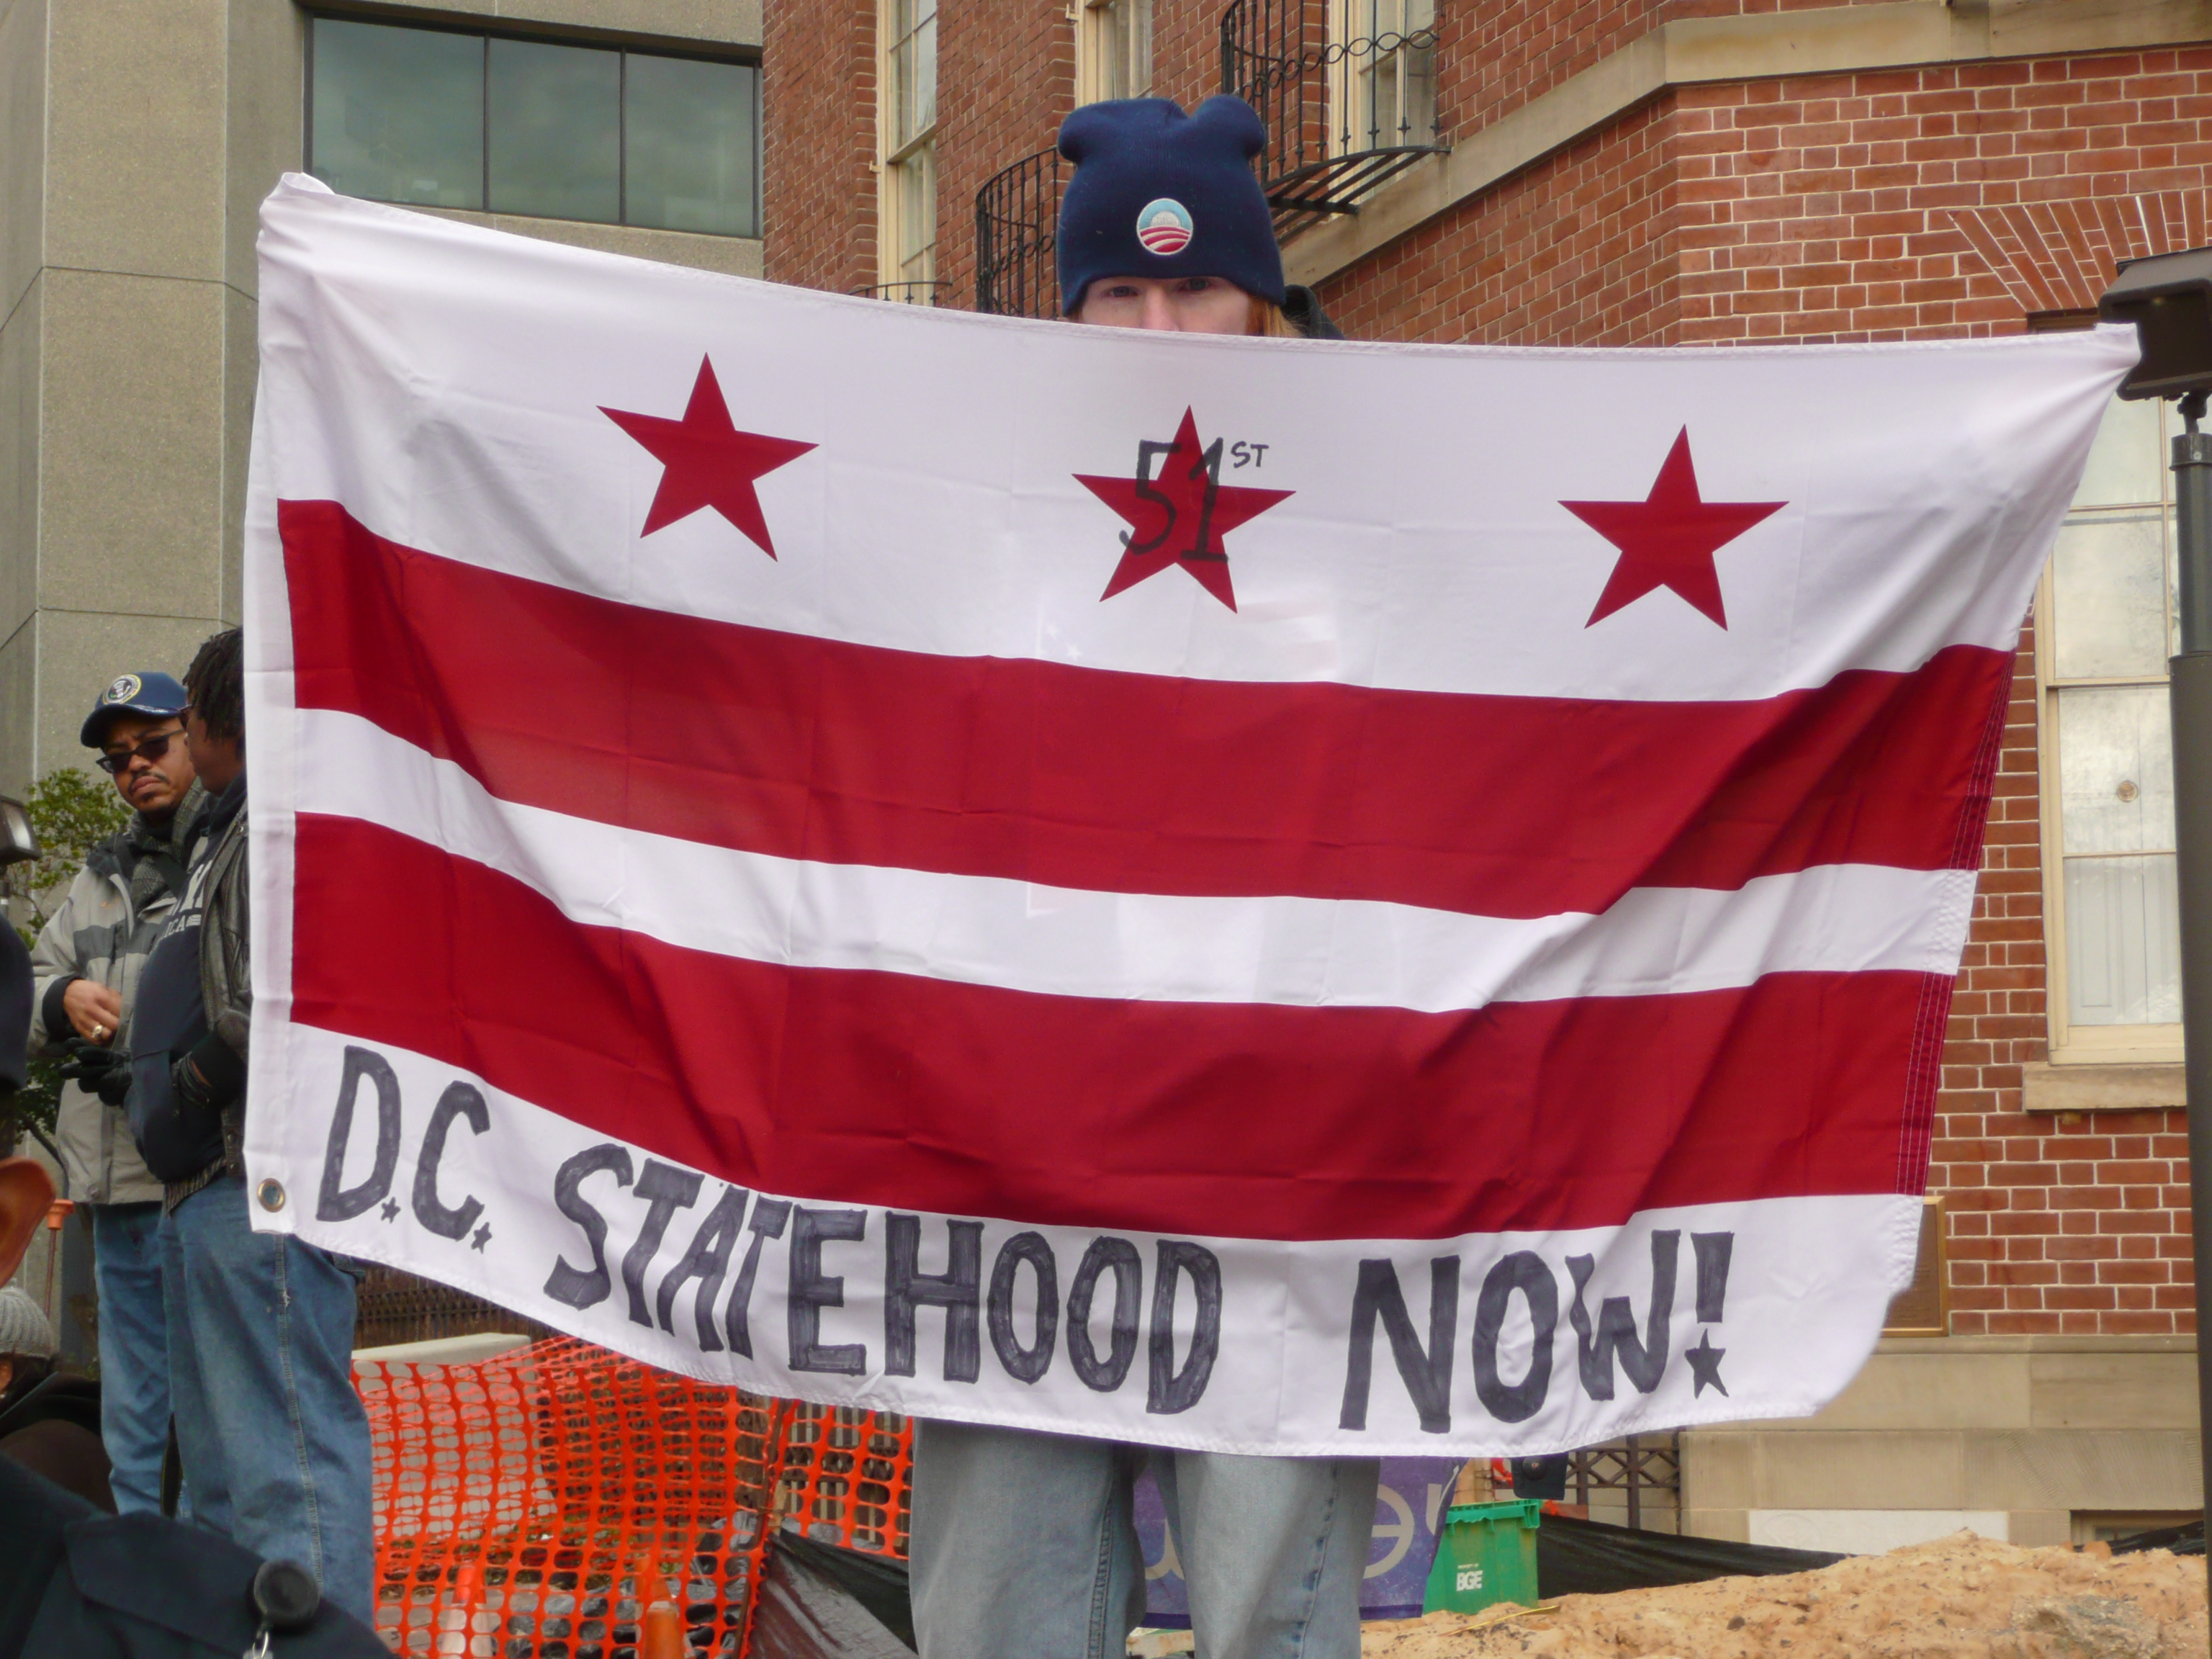 An Important Update from the DC Statehood Movement.